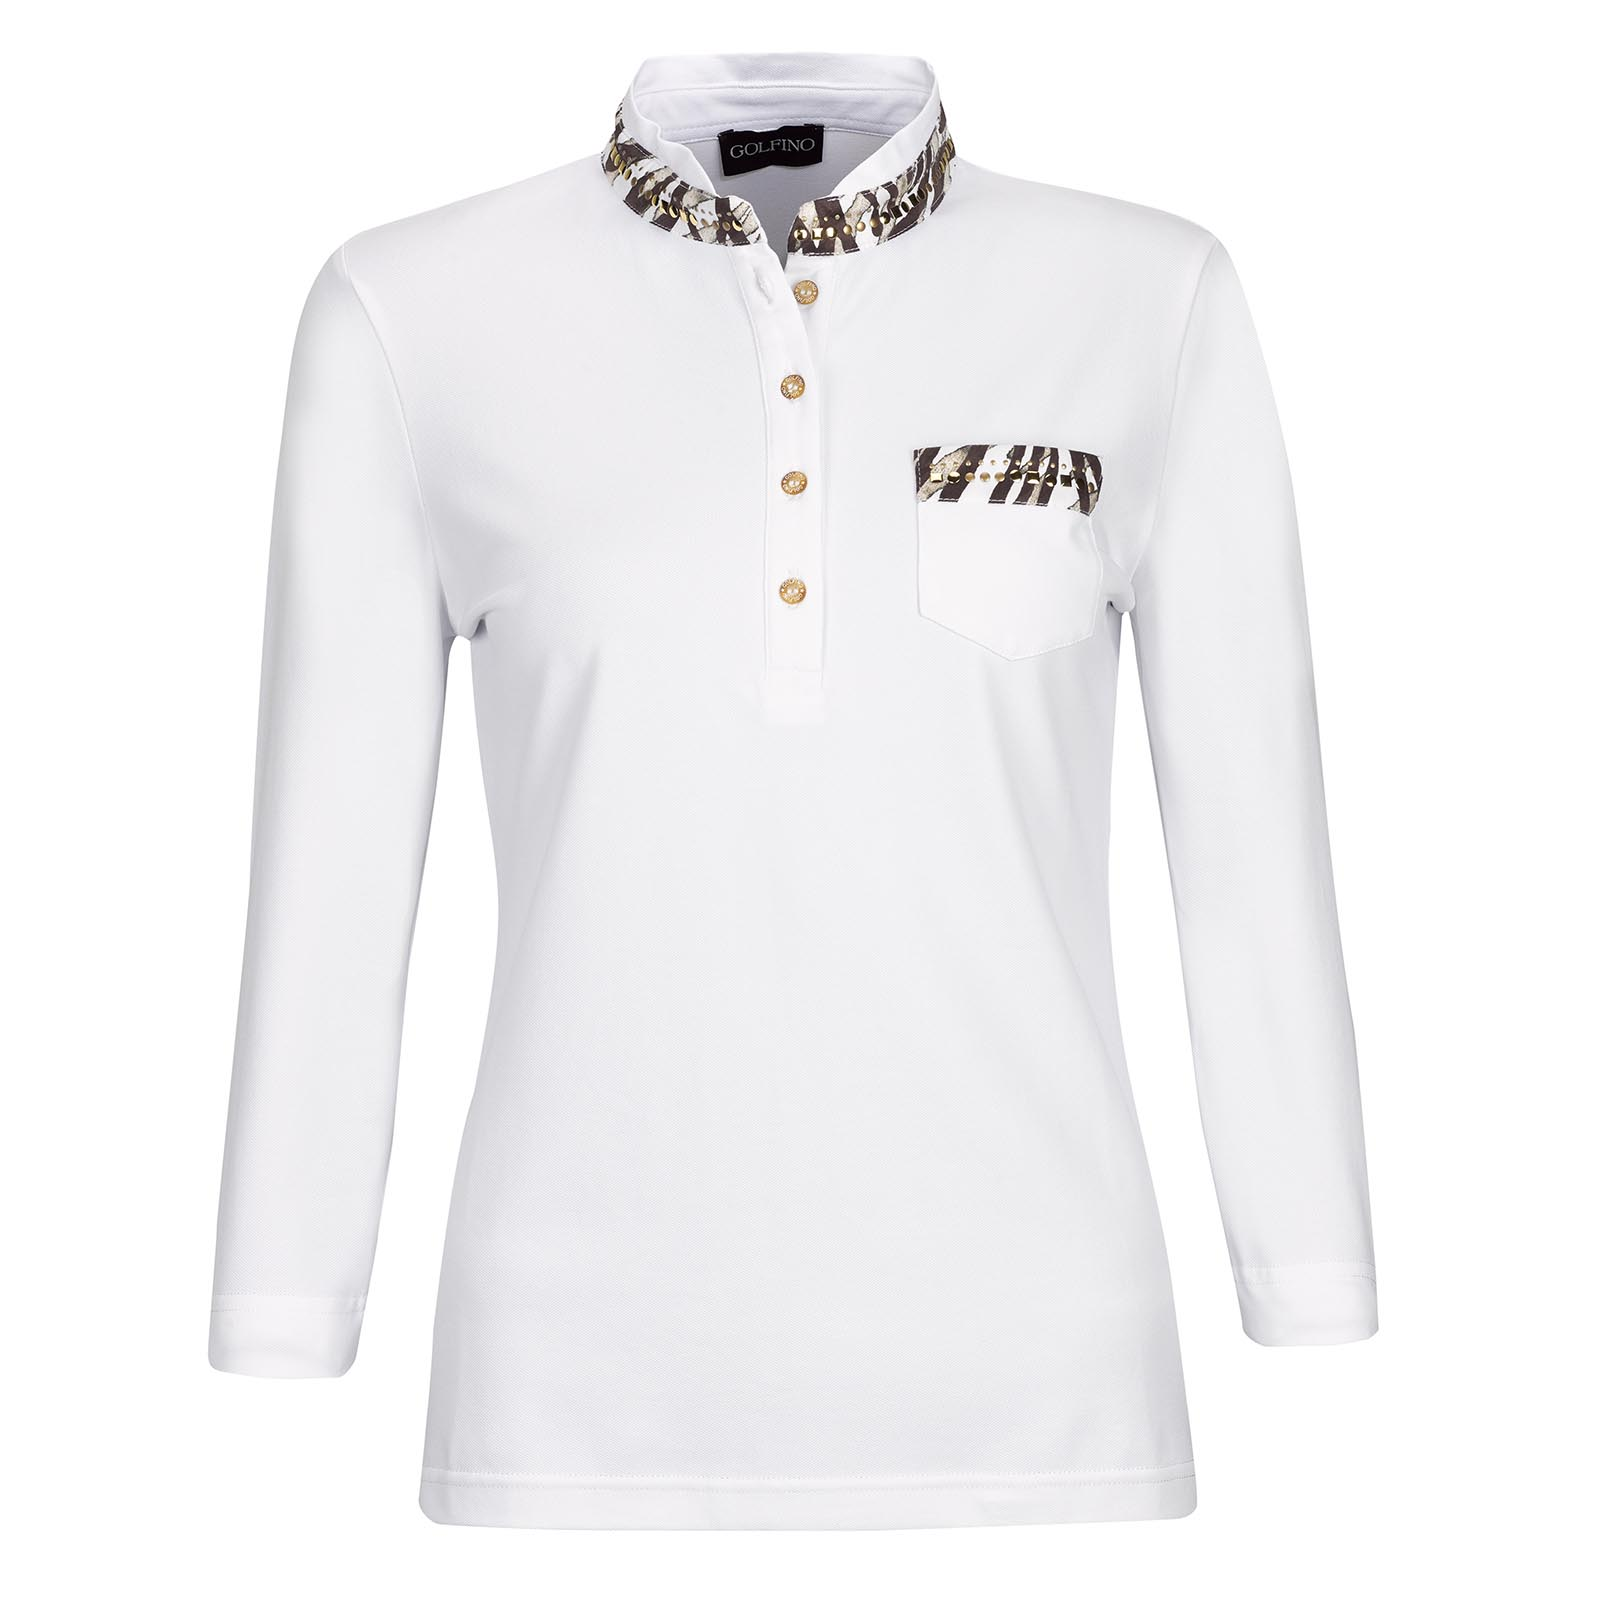 African Safari 3/4-Arm Damen Golfpolo mit Sun Protection und Metalldetails